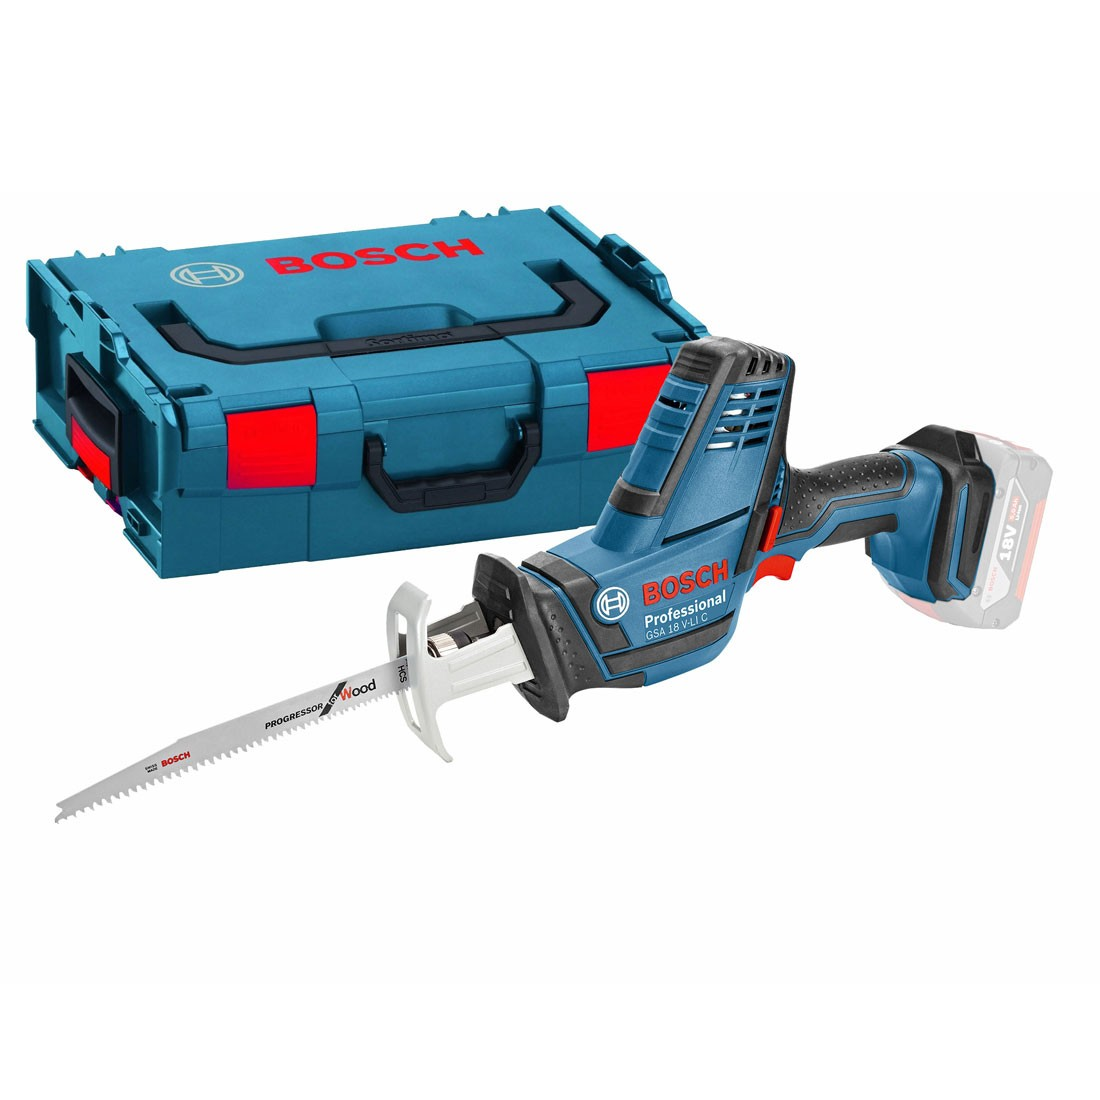 9aa3ef13c9d Bosch GSA 18 V-LI C 18v Compact Reciprocating Saw Body Only in L-Boxx  06016A5001 | Powertool World